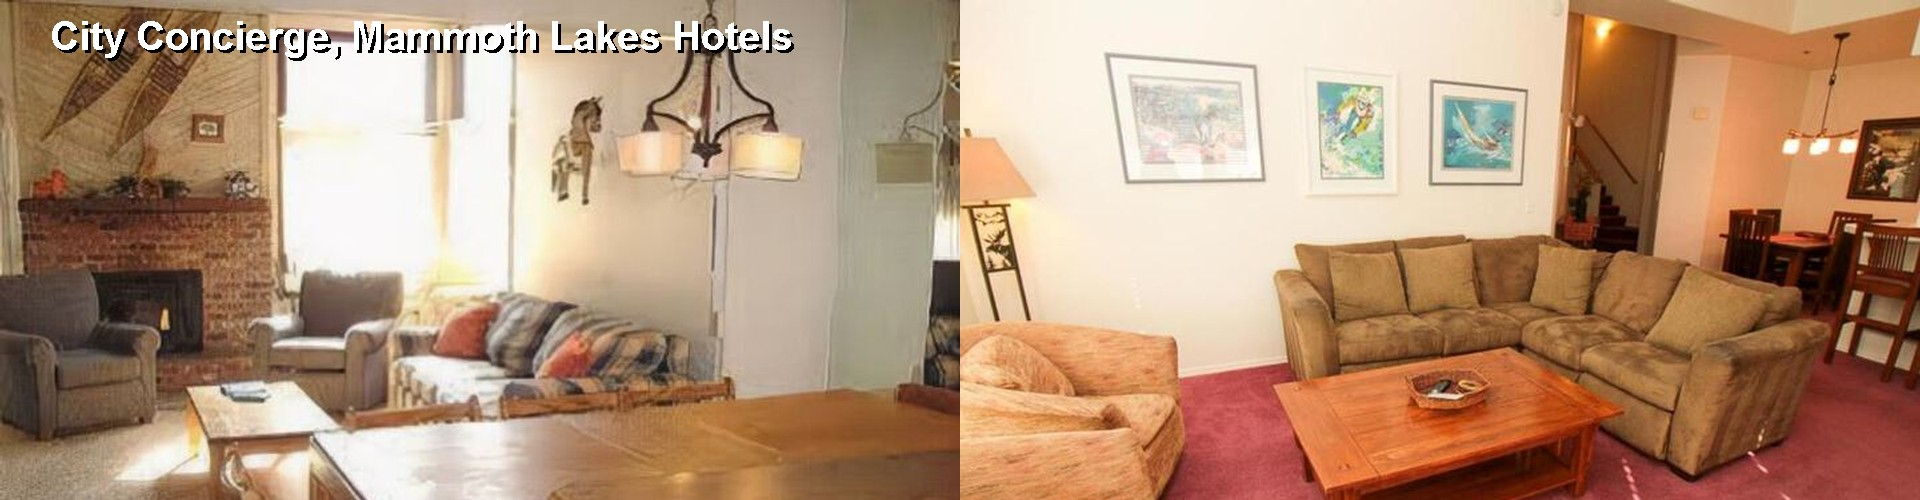 5 Best Hotels near City Concierge, Mammoth Lakes